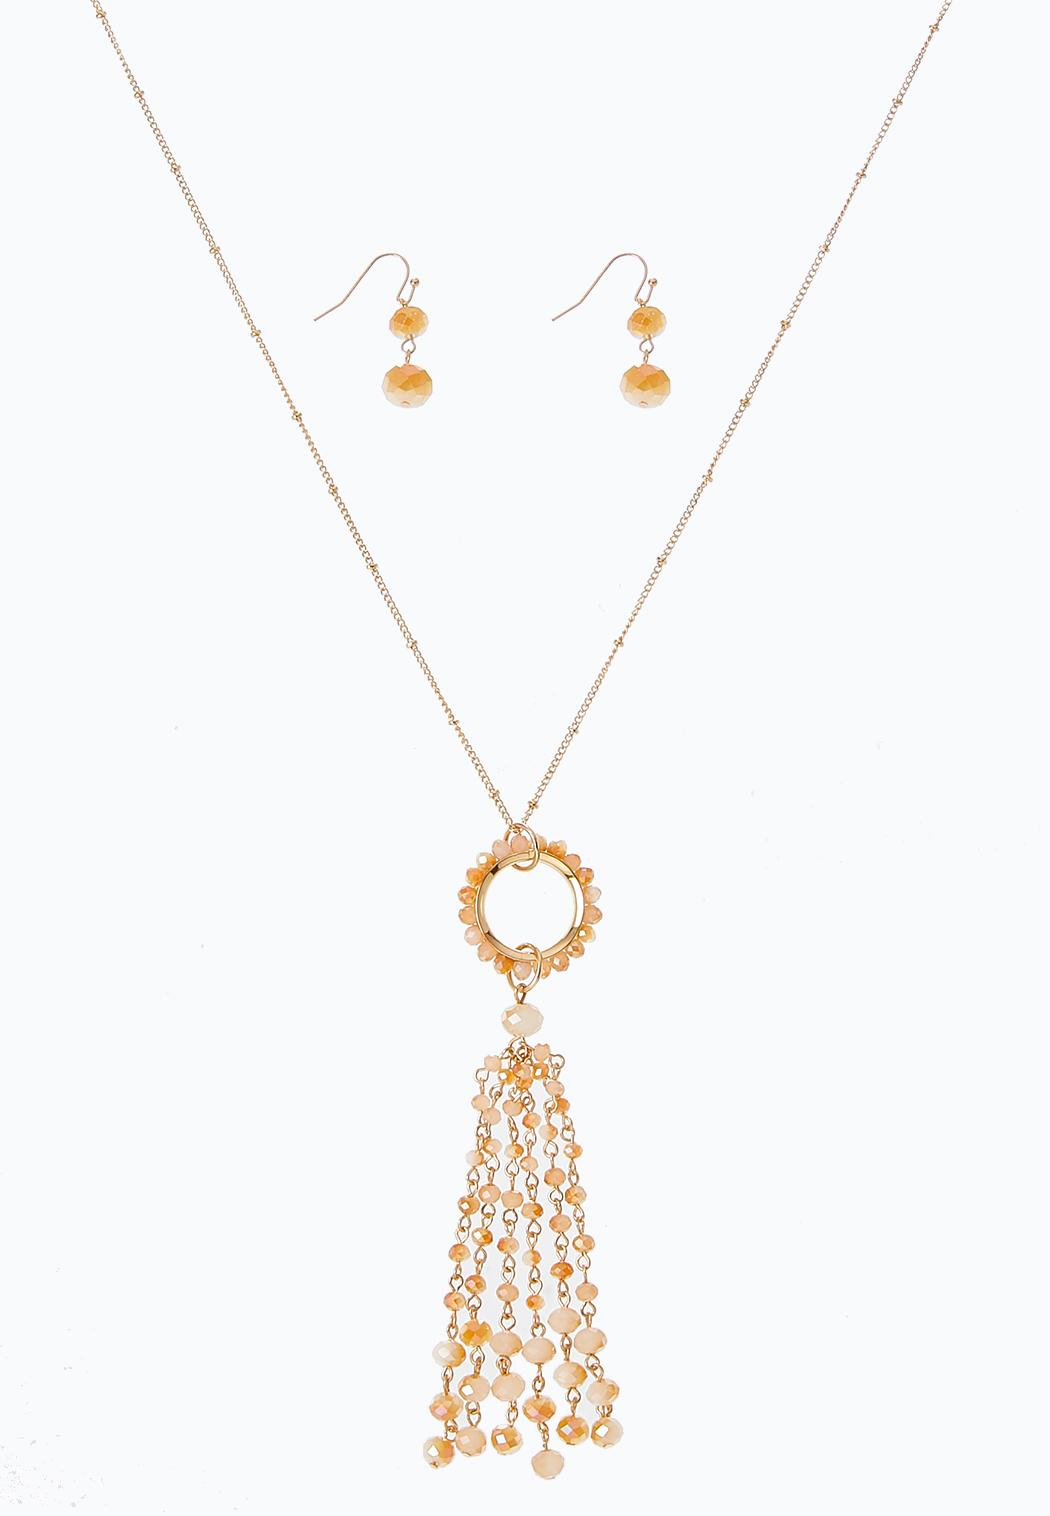 Rondelle Bead Necklace Earring Set